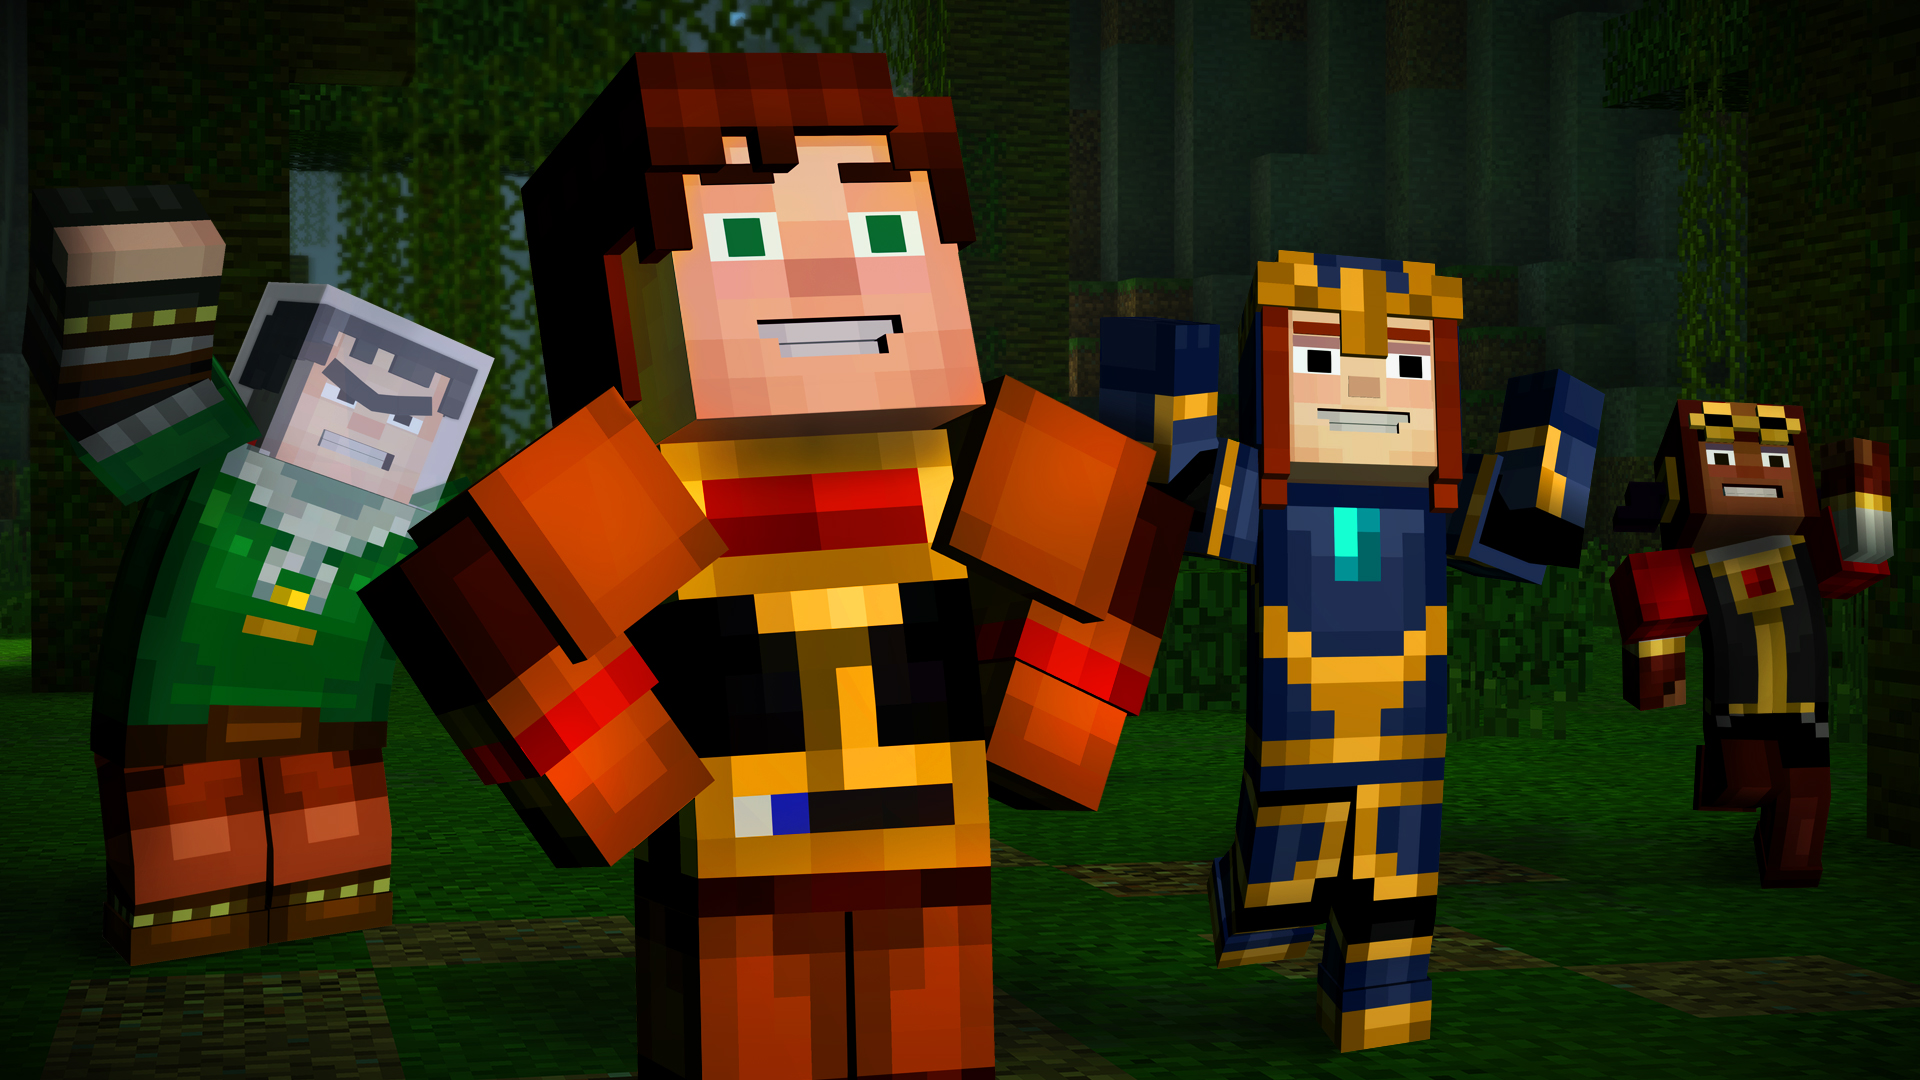 download minecraft story mode the complete adventure gog v7.8 cracked by codex include all dlc and latest update mirrorace multiup